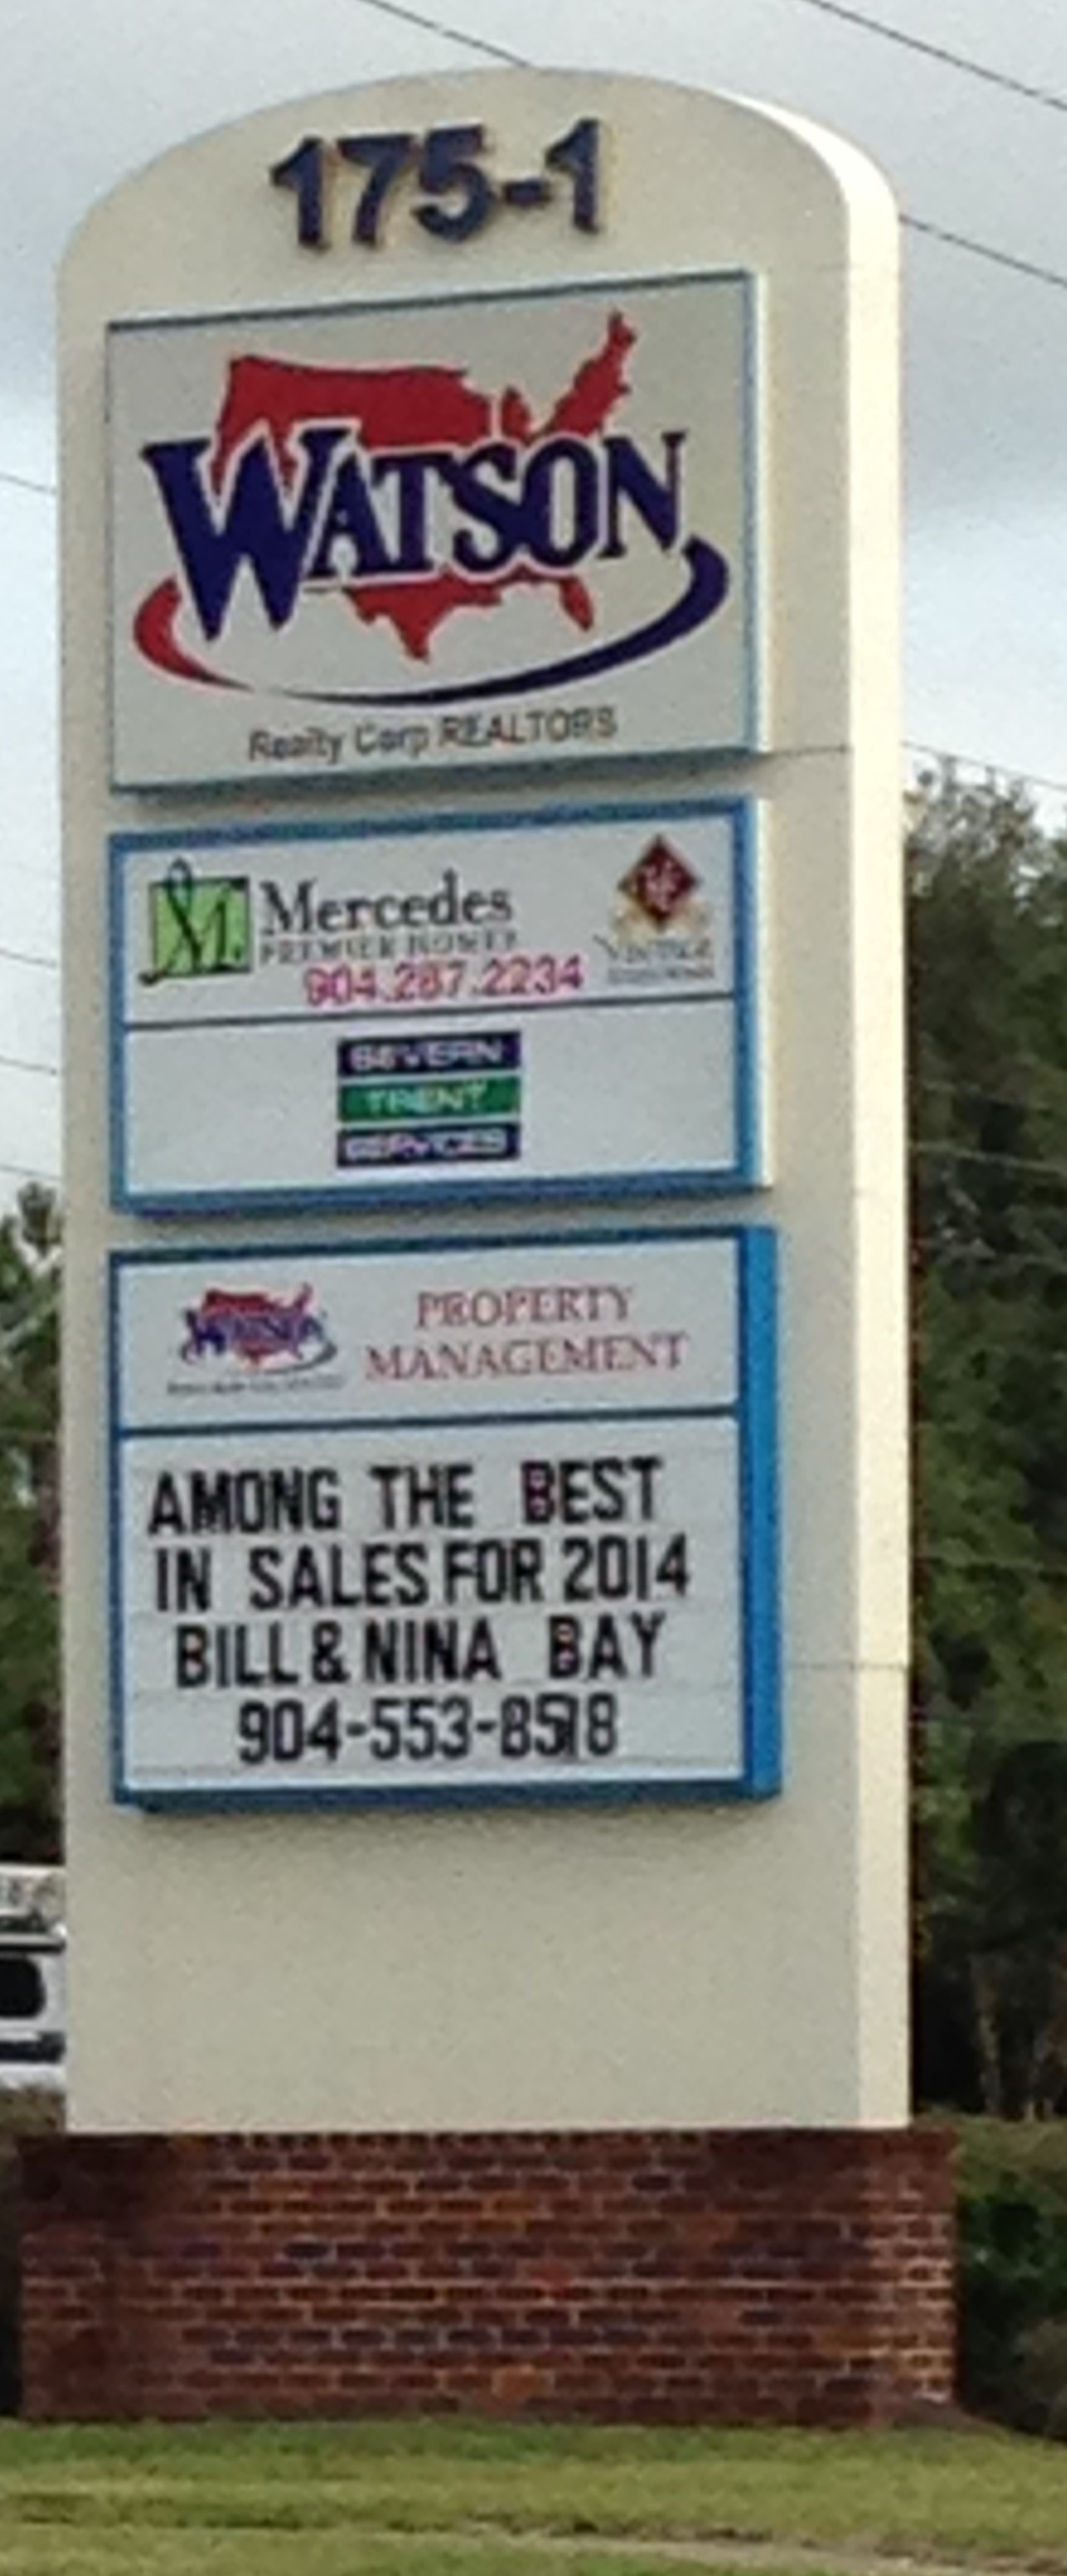 Big_sign_with_Best_in_Sales_for_2014.JPG